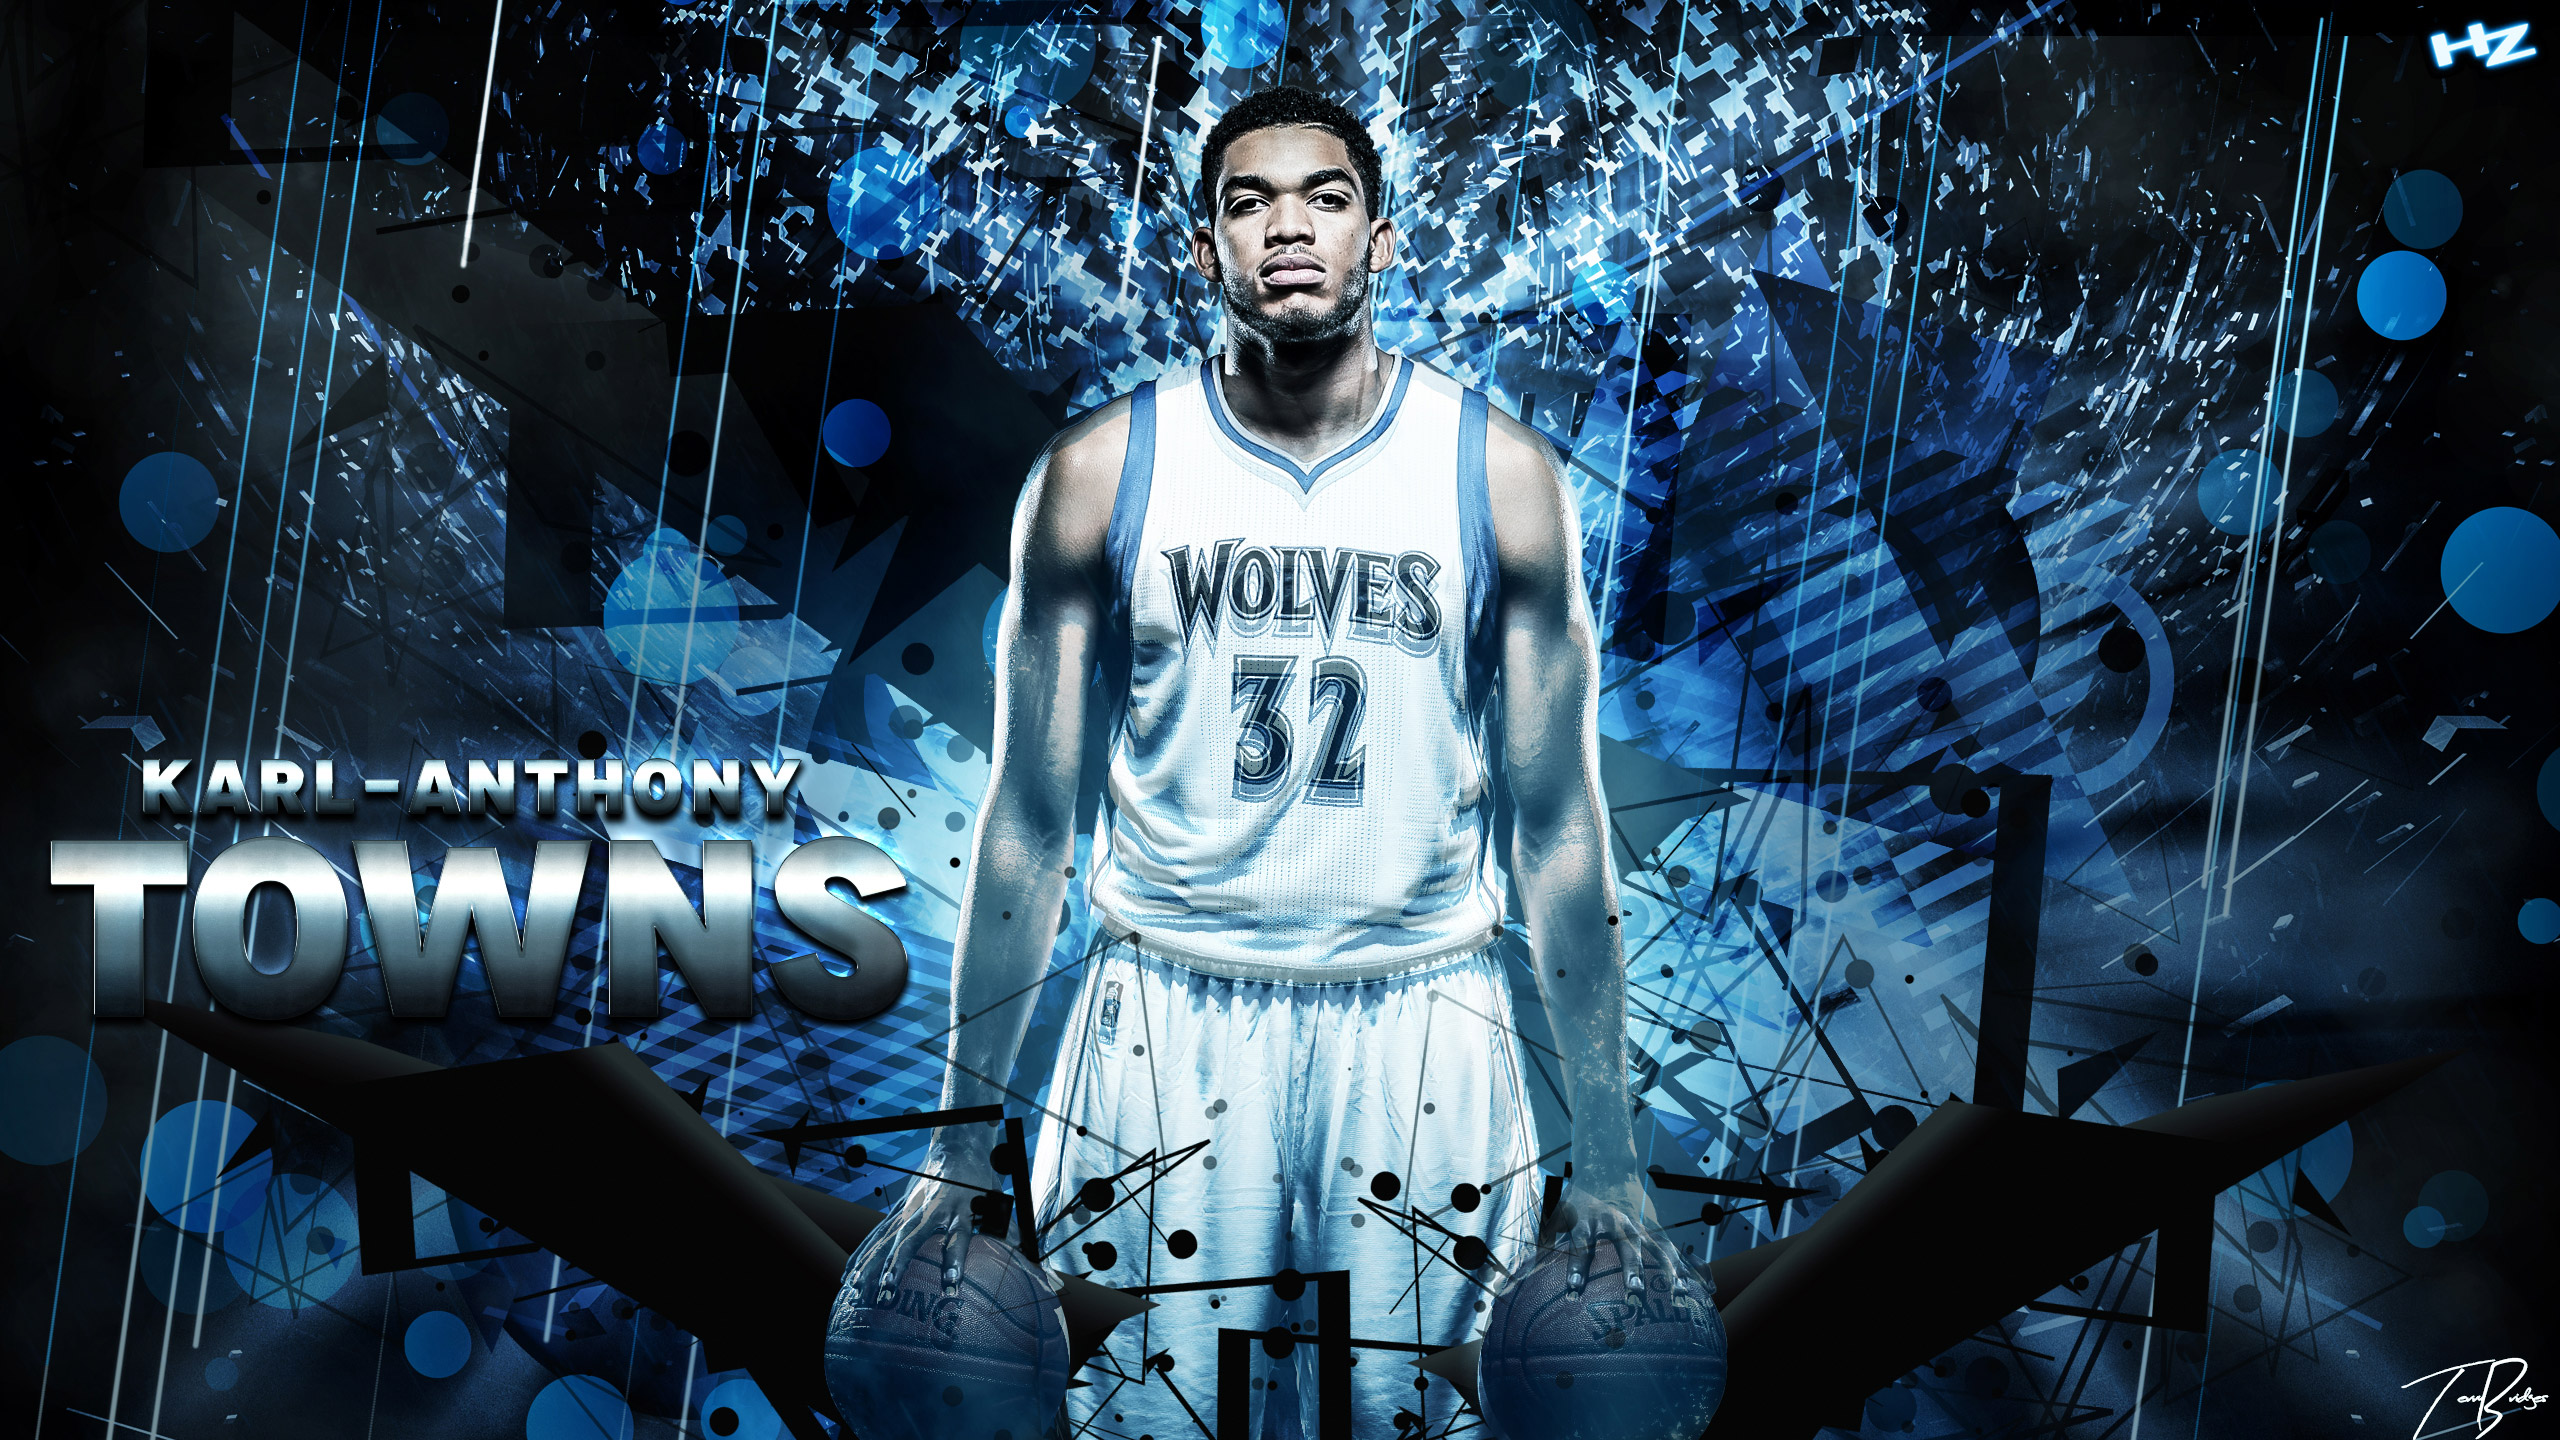 Minnesota Timberwolves Wallpapers Basketball Wallpapers at 2560x1440